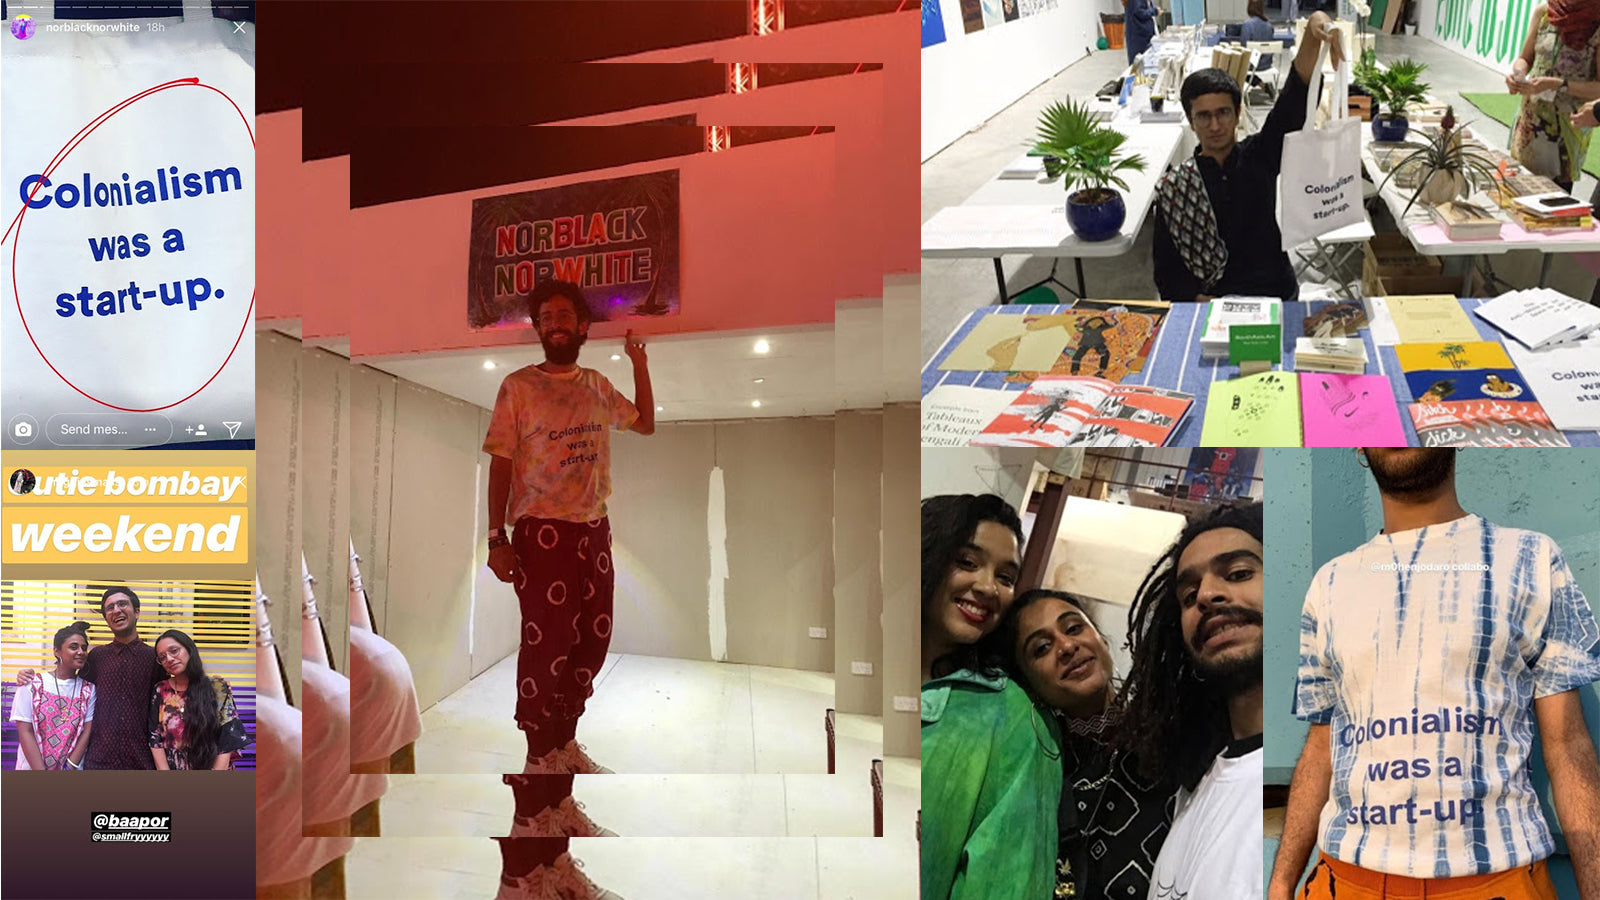 instagram, screenshot, somnath bhatt, colonialism was a start-up, collab, nbnw